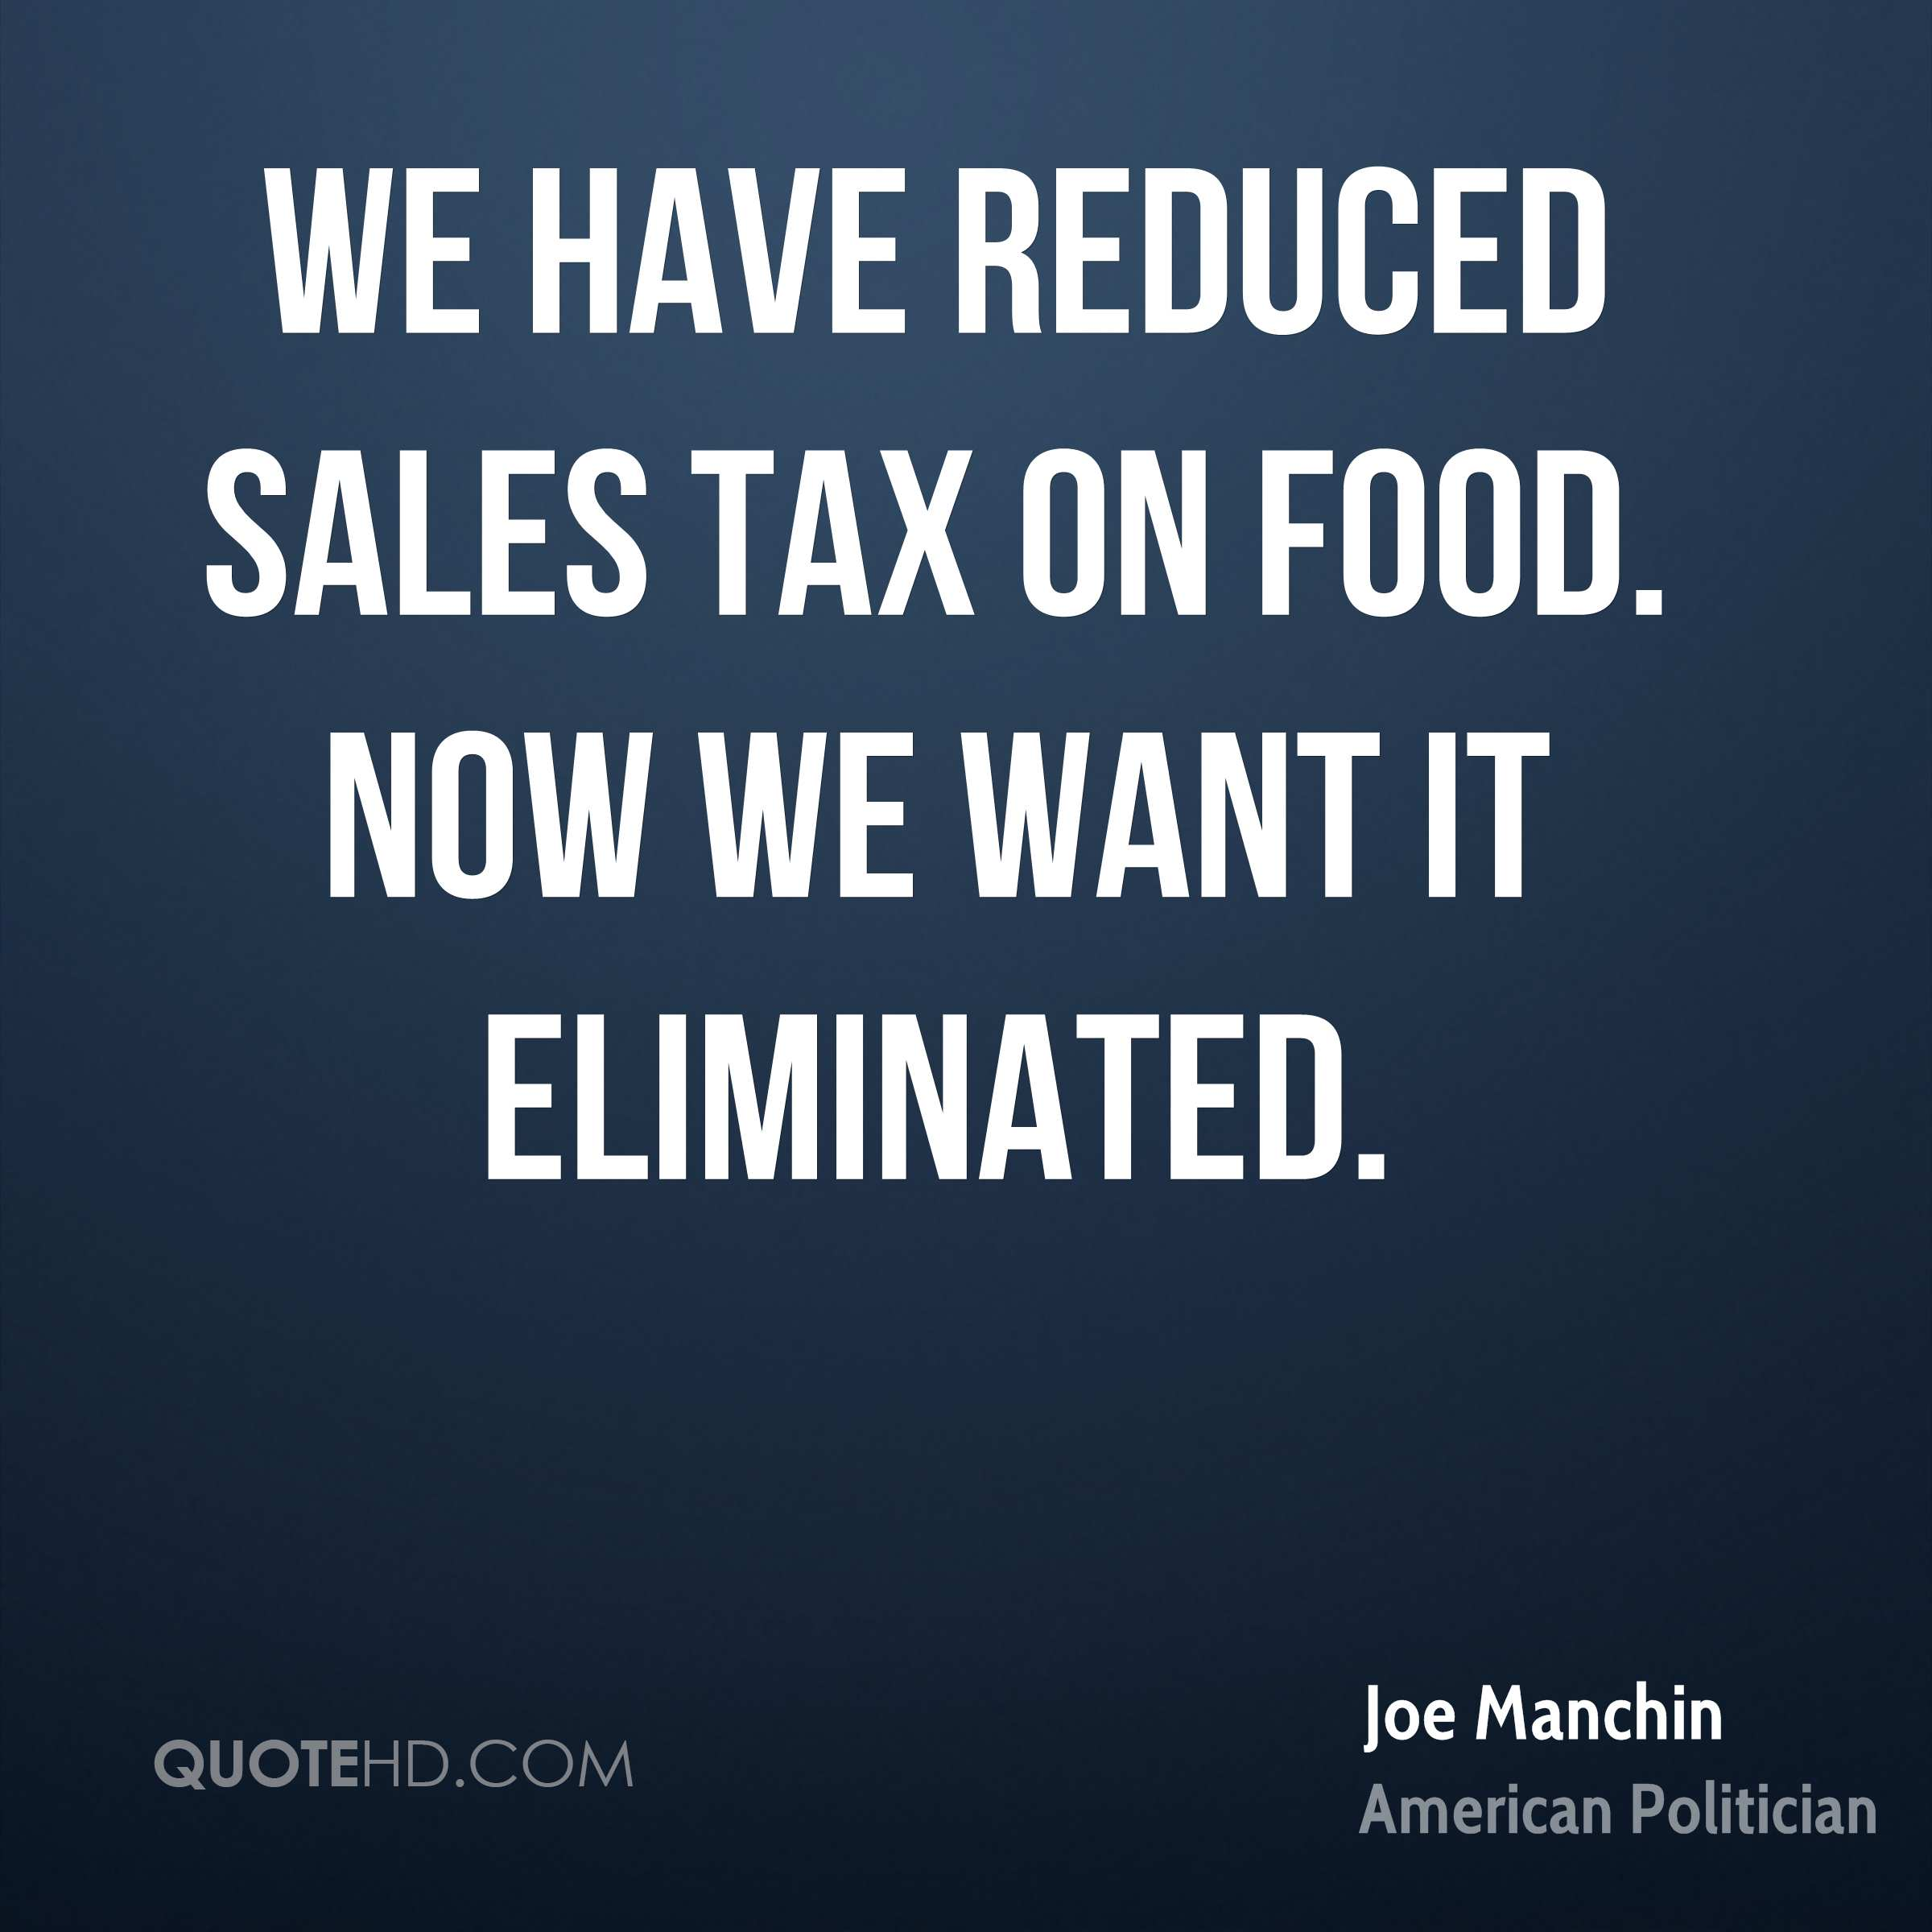 We have reduced sales tax on food. Now we want it eliminated.